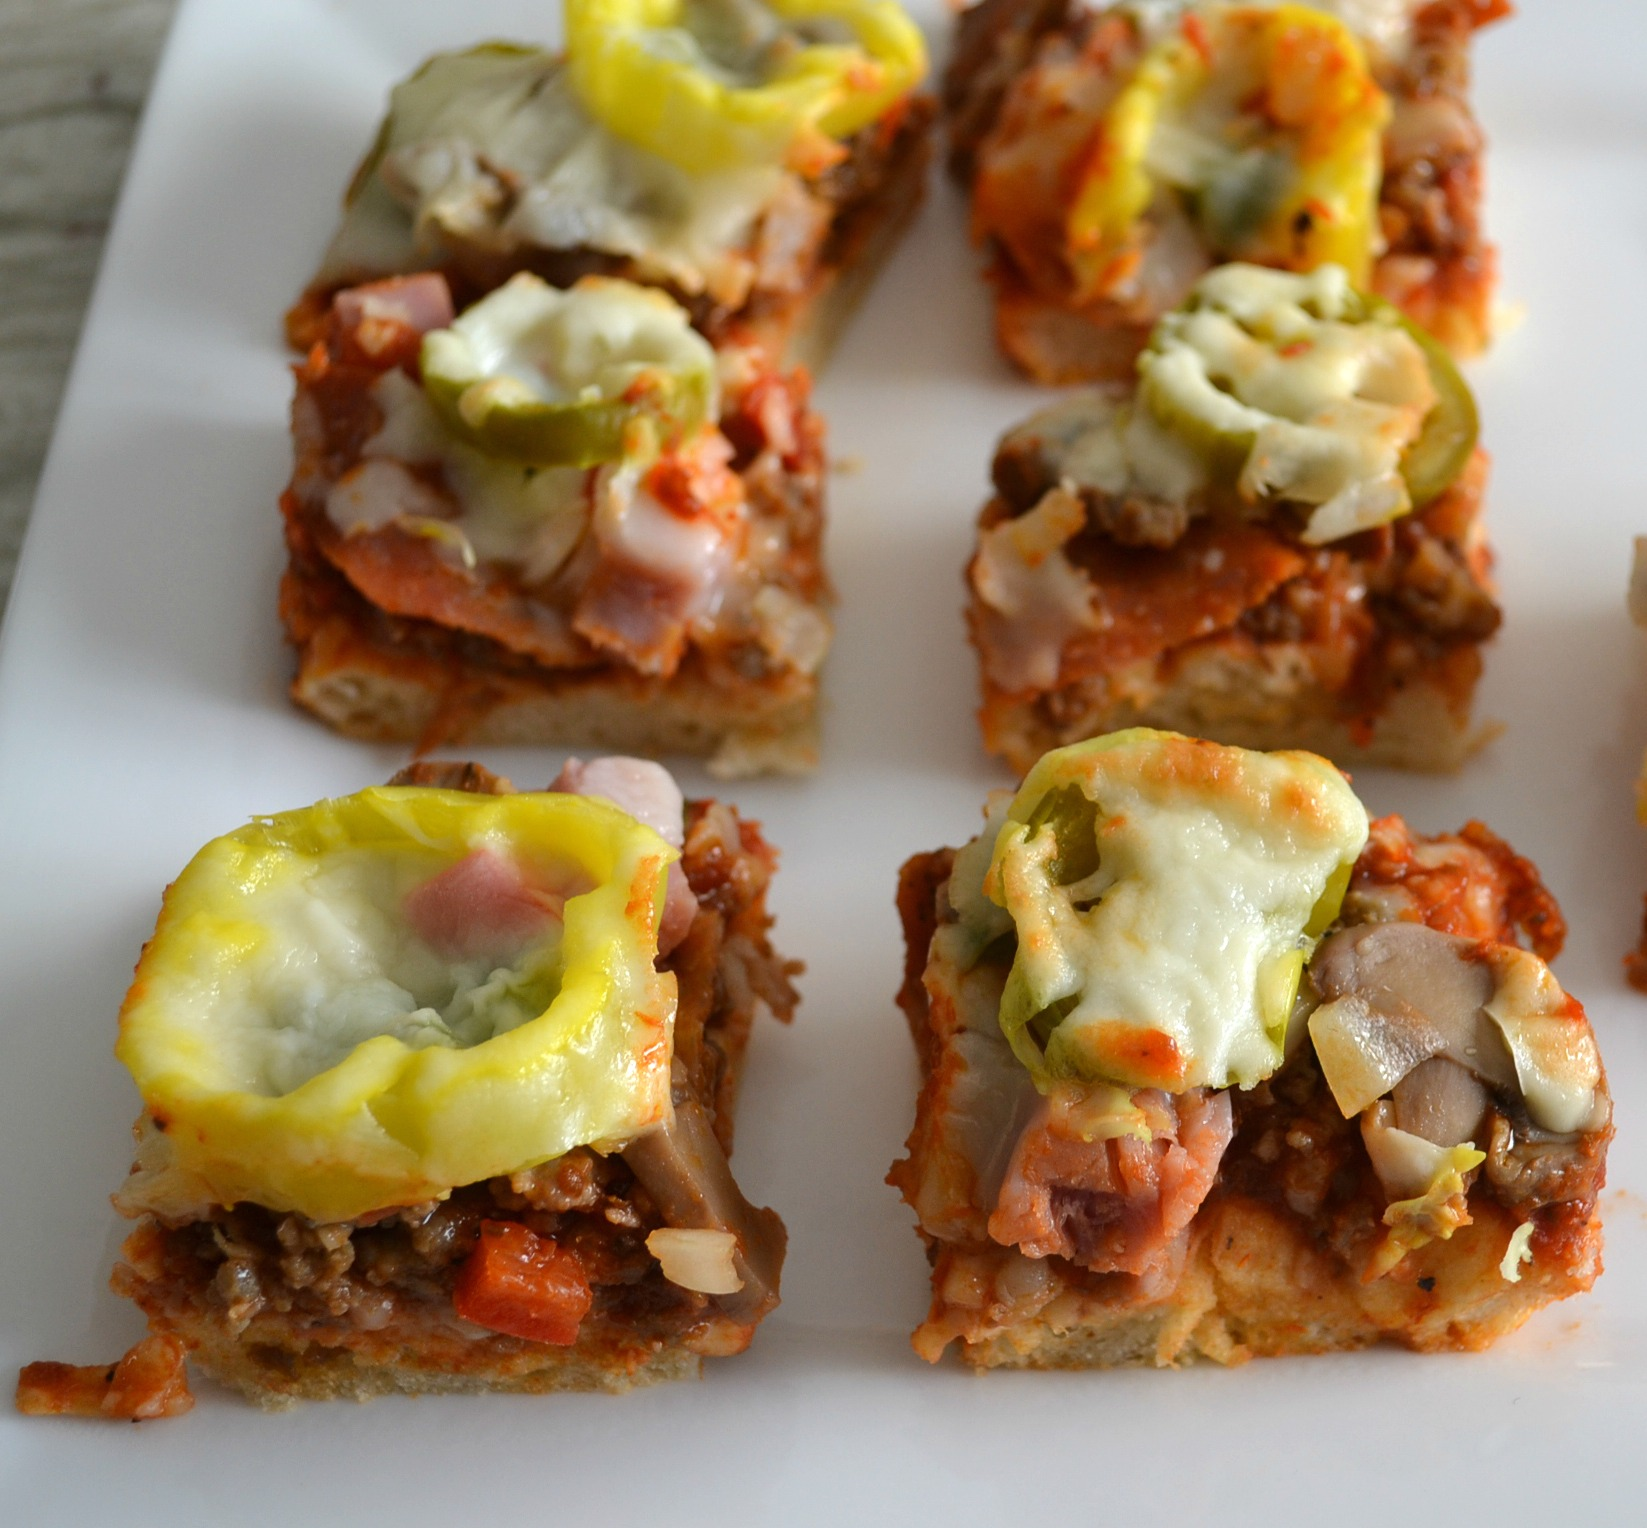 A fun and easy appetizer made from a crust mix, packed with toppings, and cut into bite size servings.